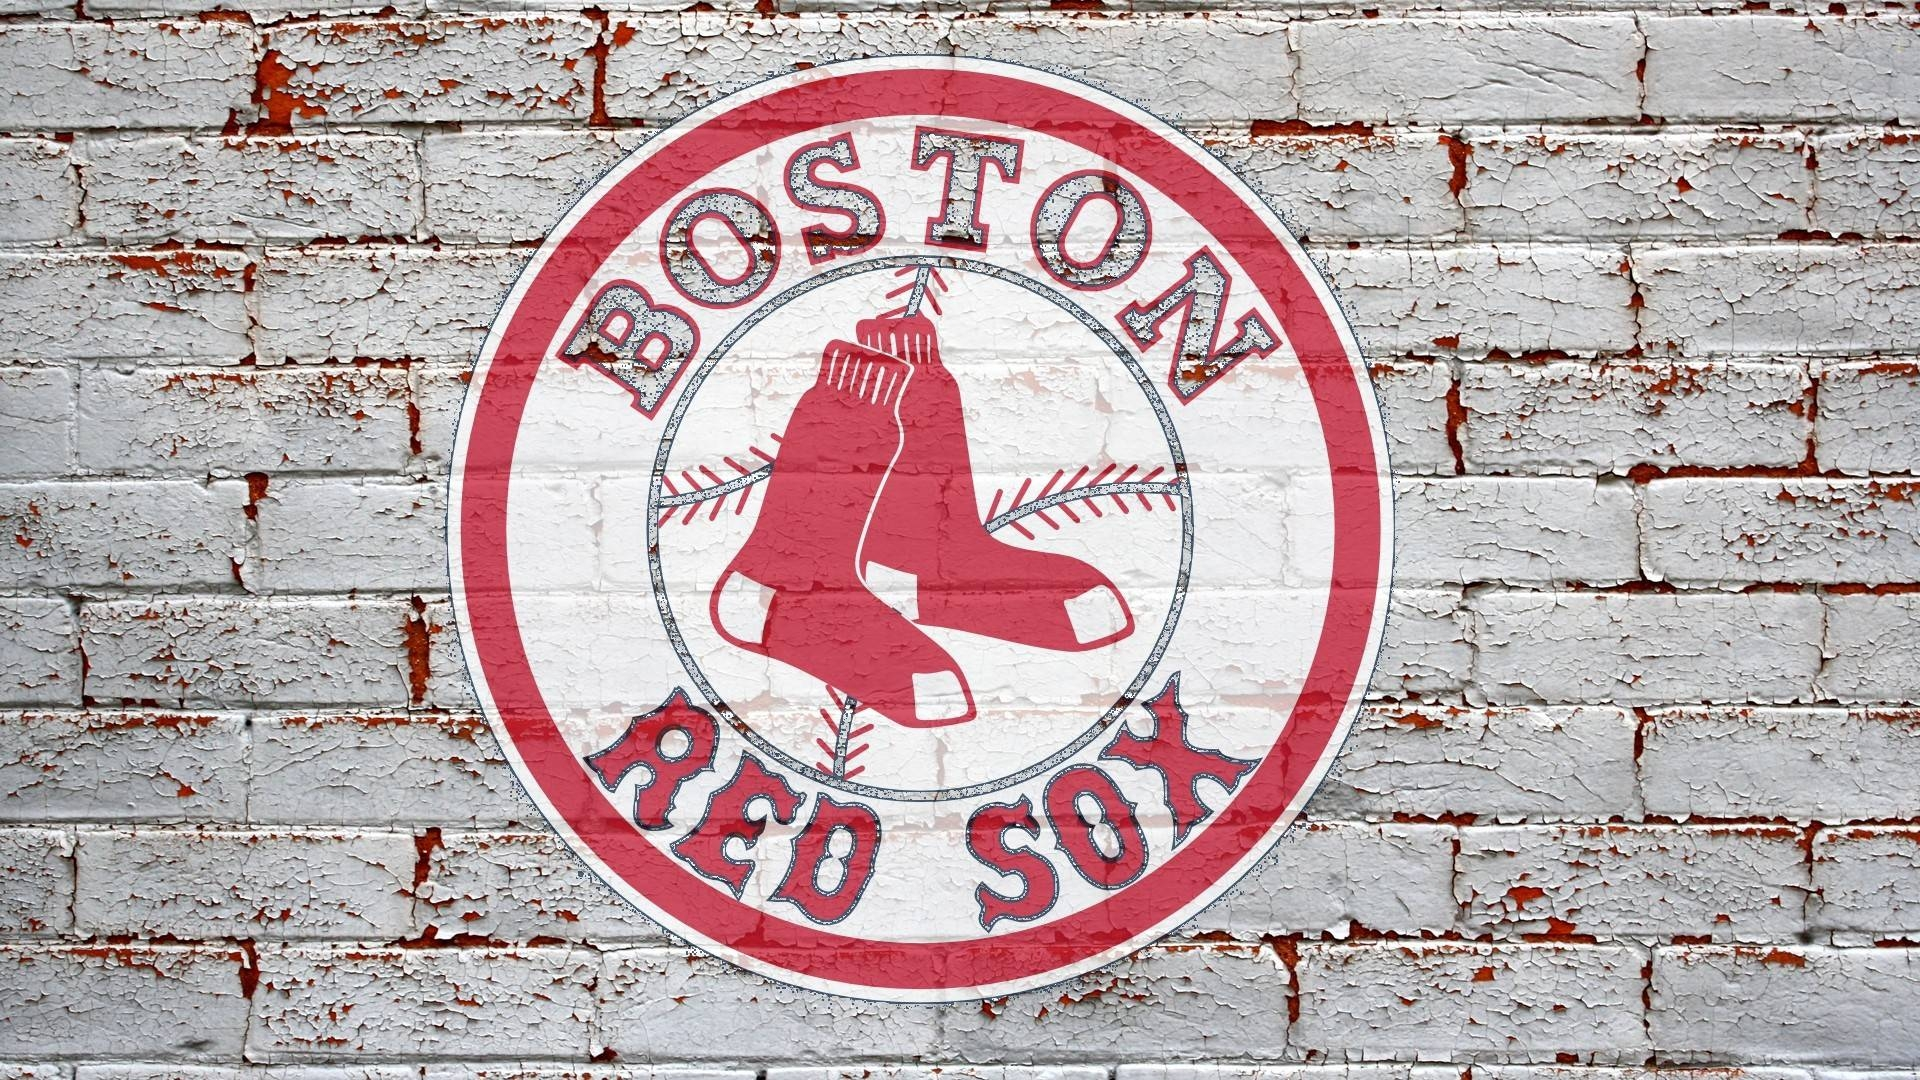 Boston Red Sox Wallpaper | Free Download Clip Art | Free Clip Art Pertaining To Recent Boston Red Sox Wall Art (View 5 of 25)